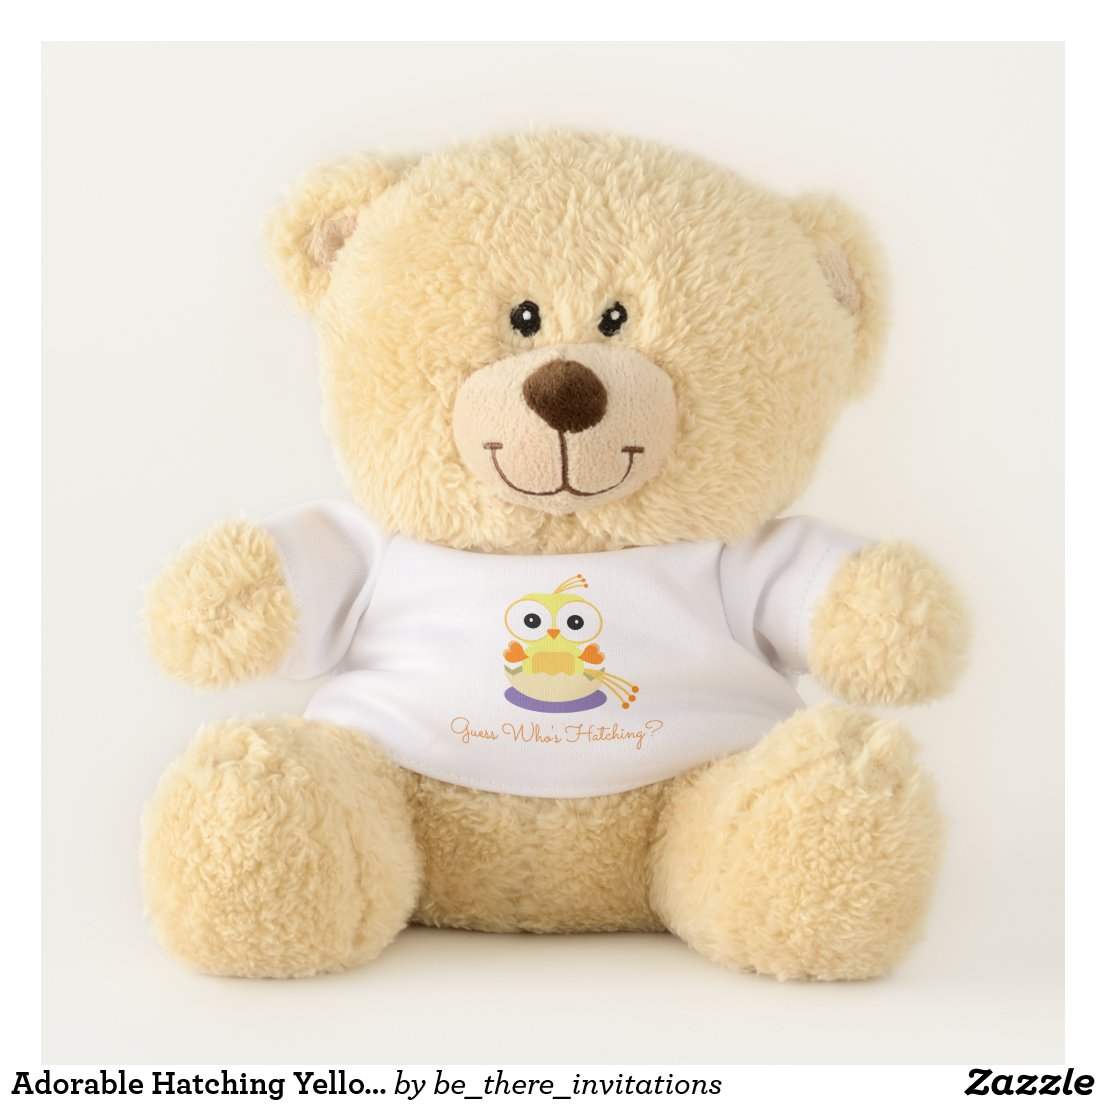 Adorable Hatching Yellow Bird Gender Reveal Teddy Bear